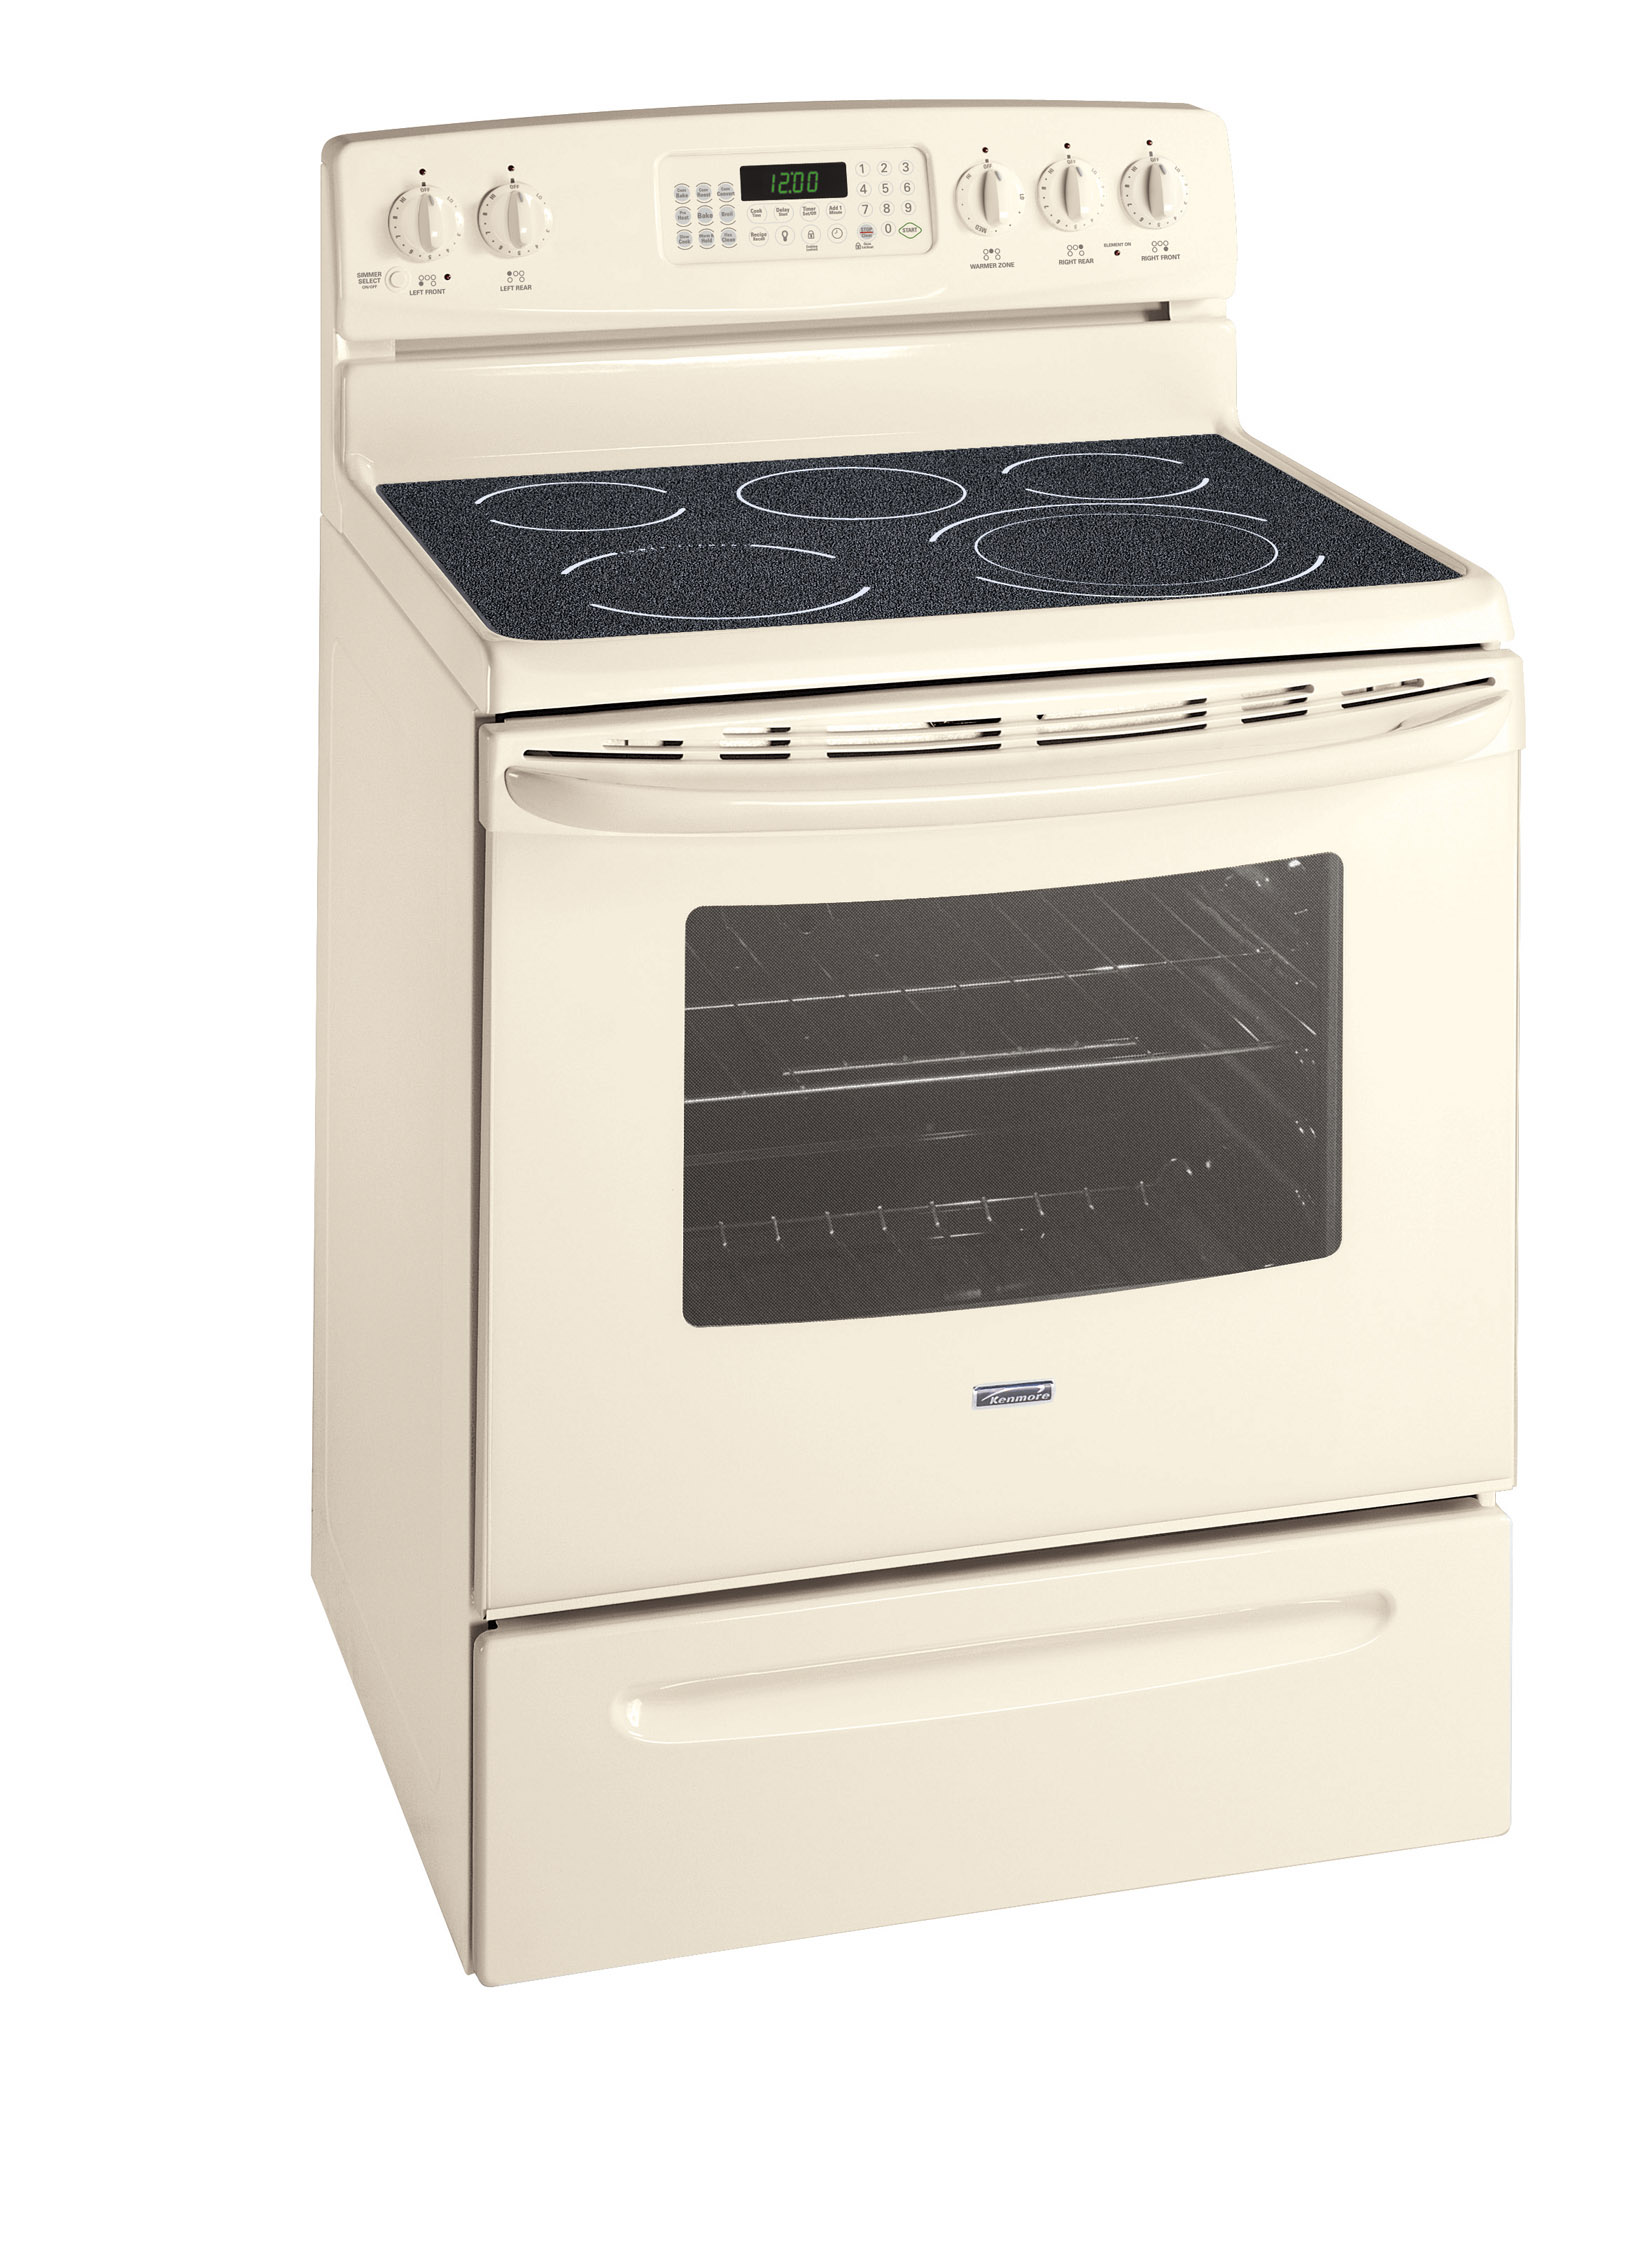 Kenmore Range/Stove/Oven Model 790.96544602 Parts